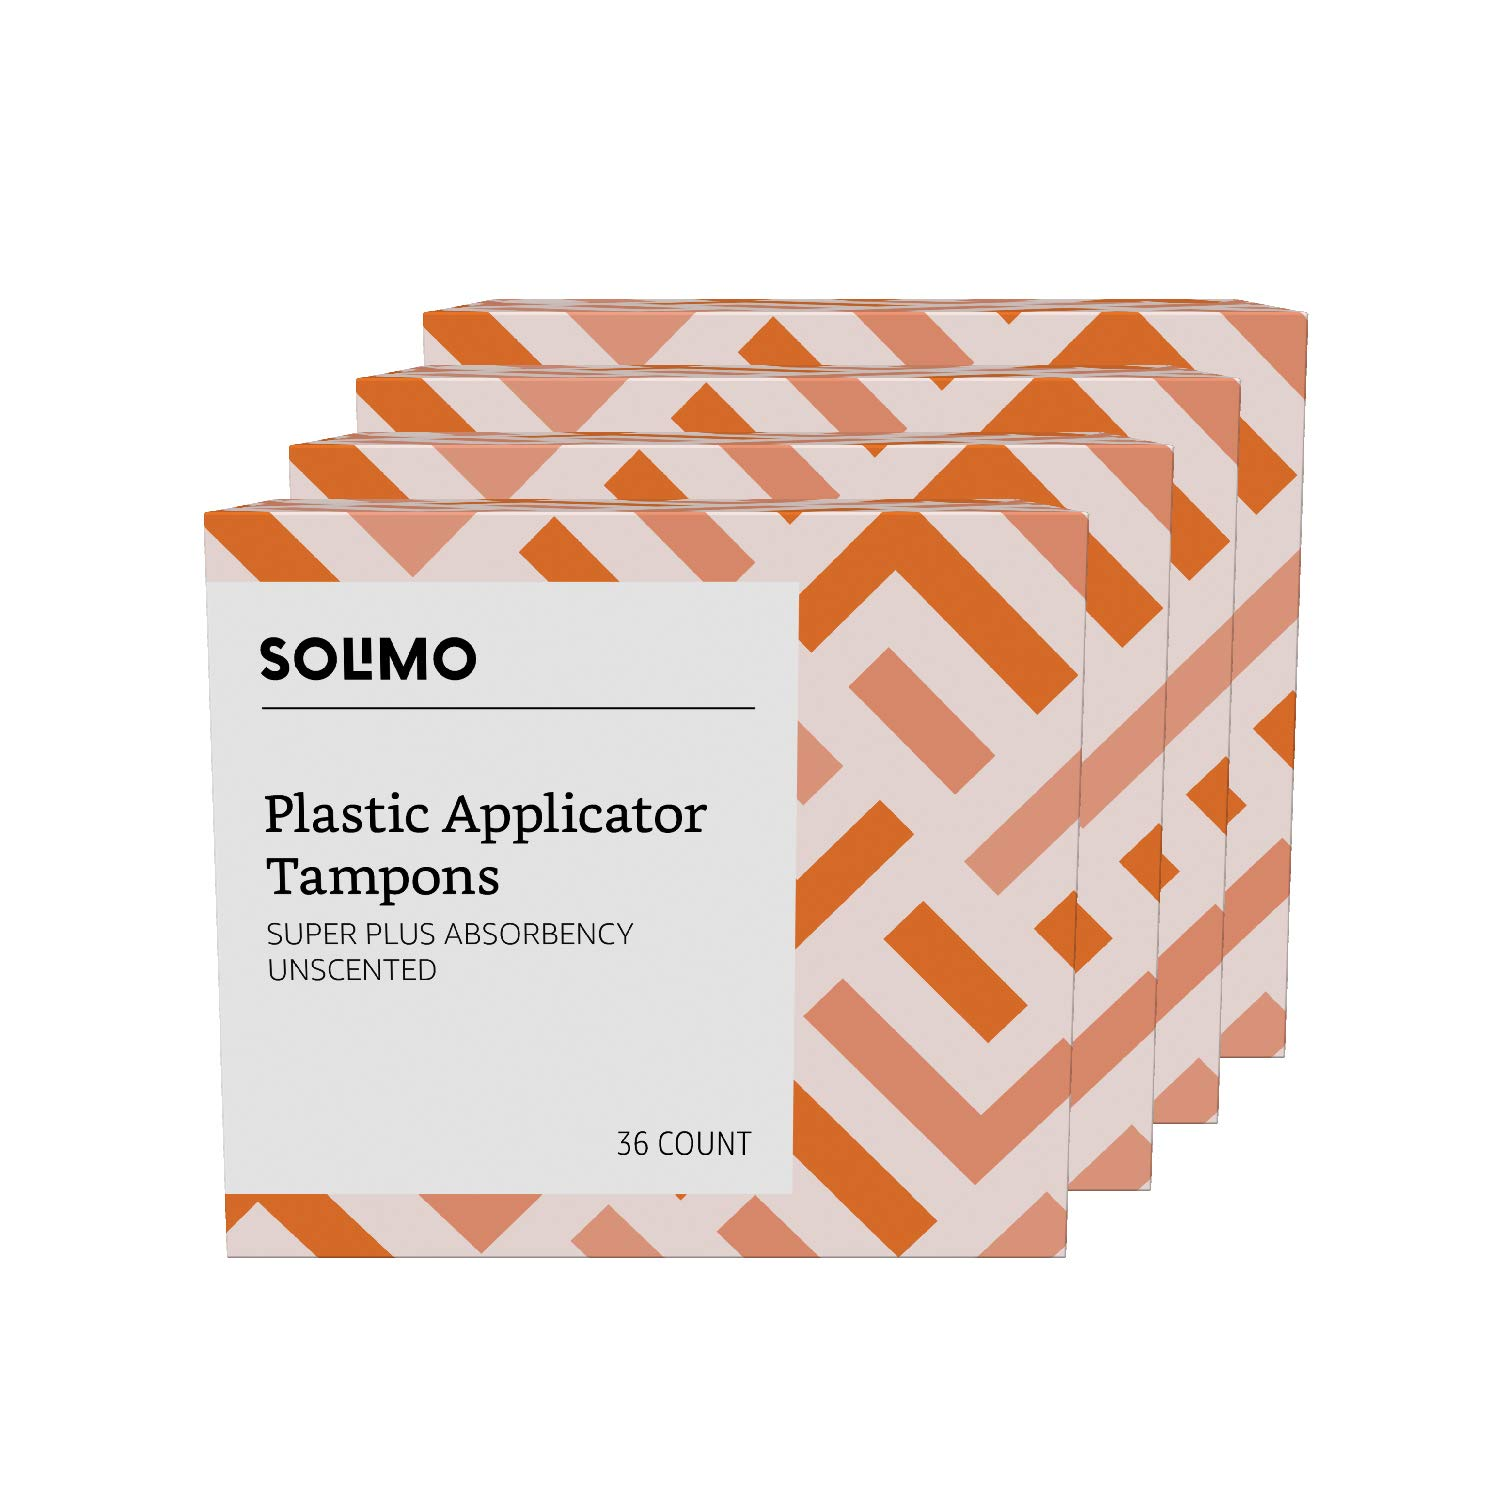 Amazon Brand - Solimo Plastic Applicator Tampons, Super Plus Absorbency, Unscented, 144 Count